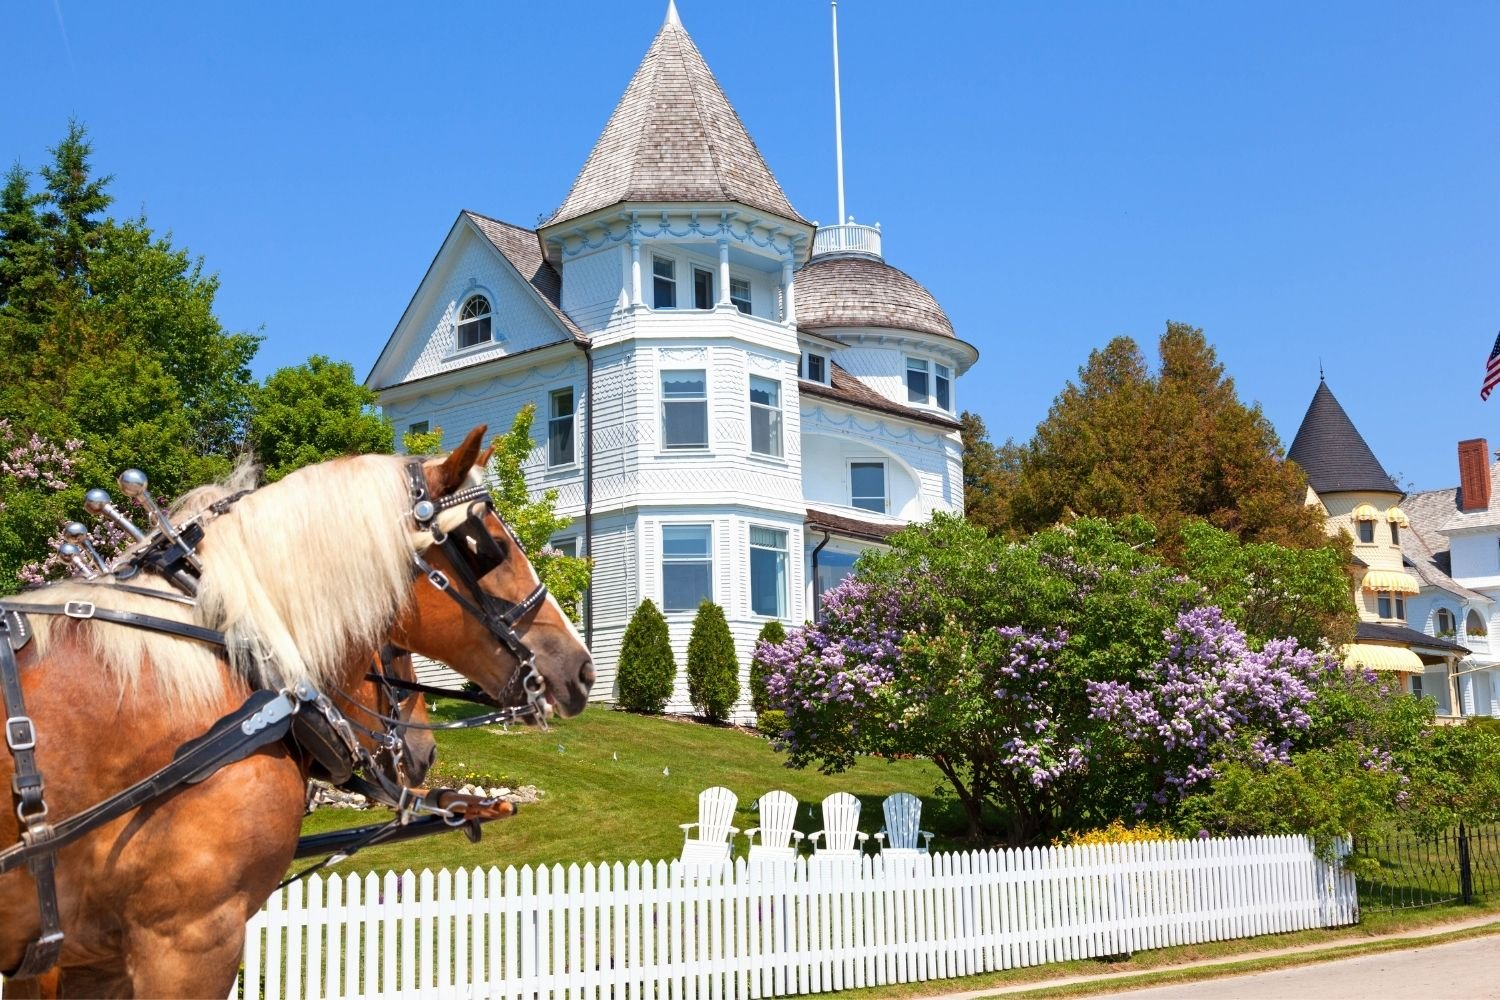 Horse carriage in front of Victoria Bluff on Mackinac Island